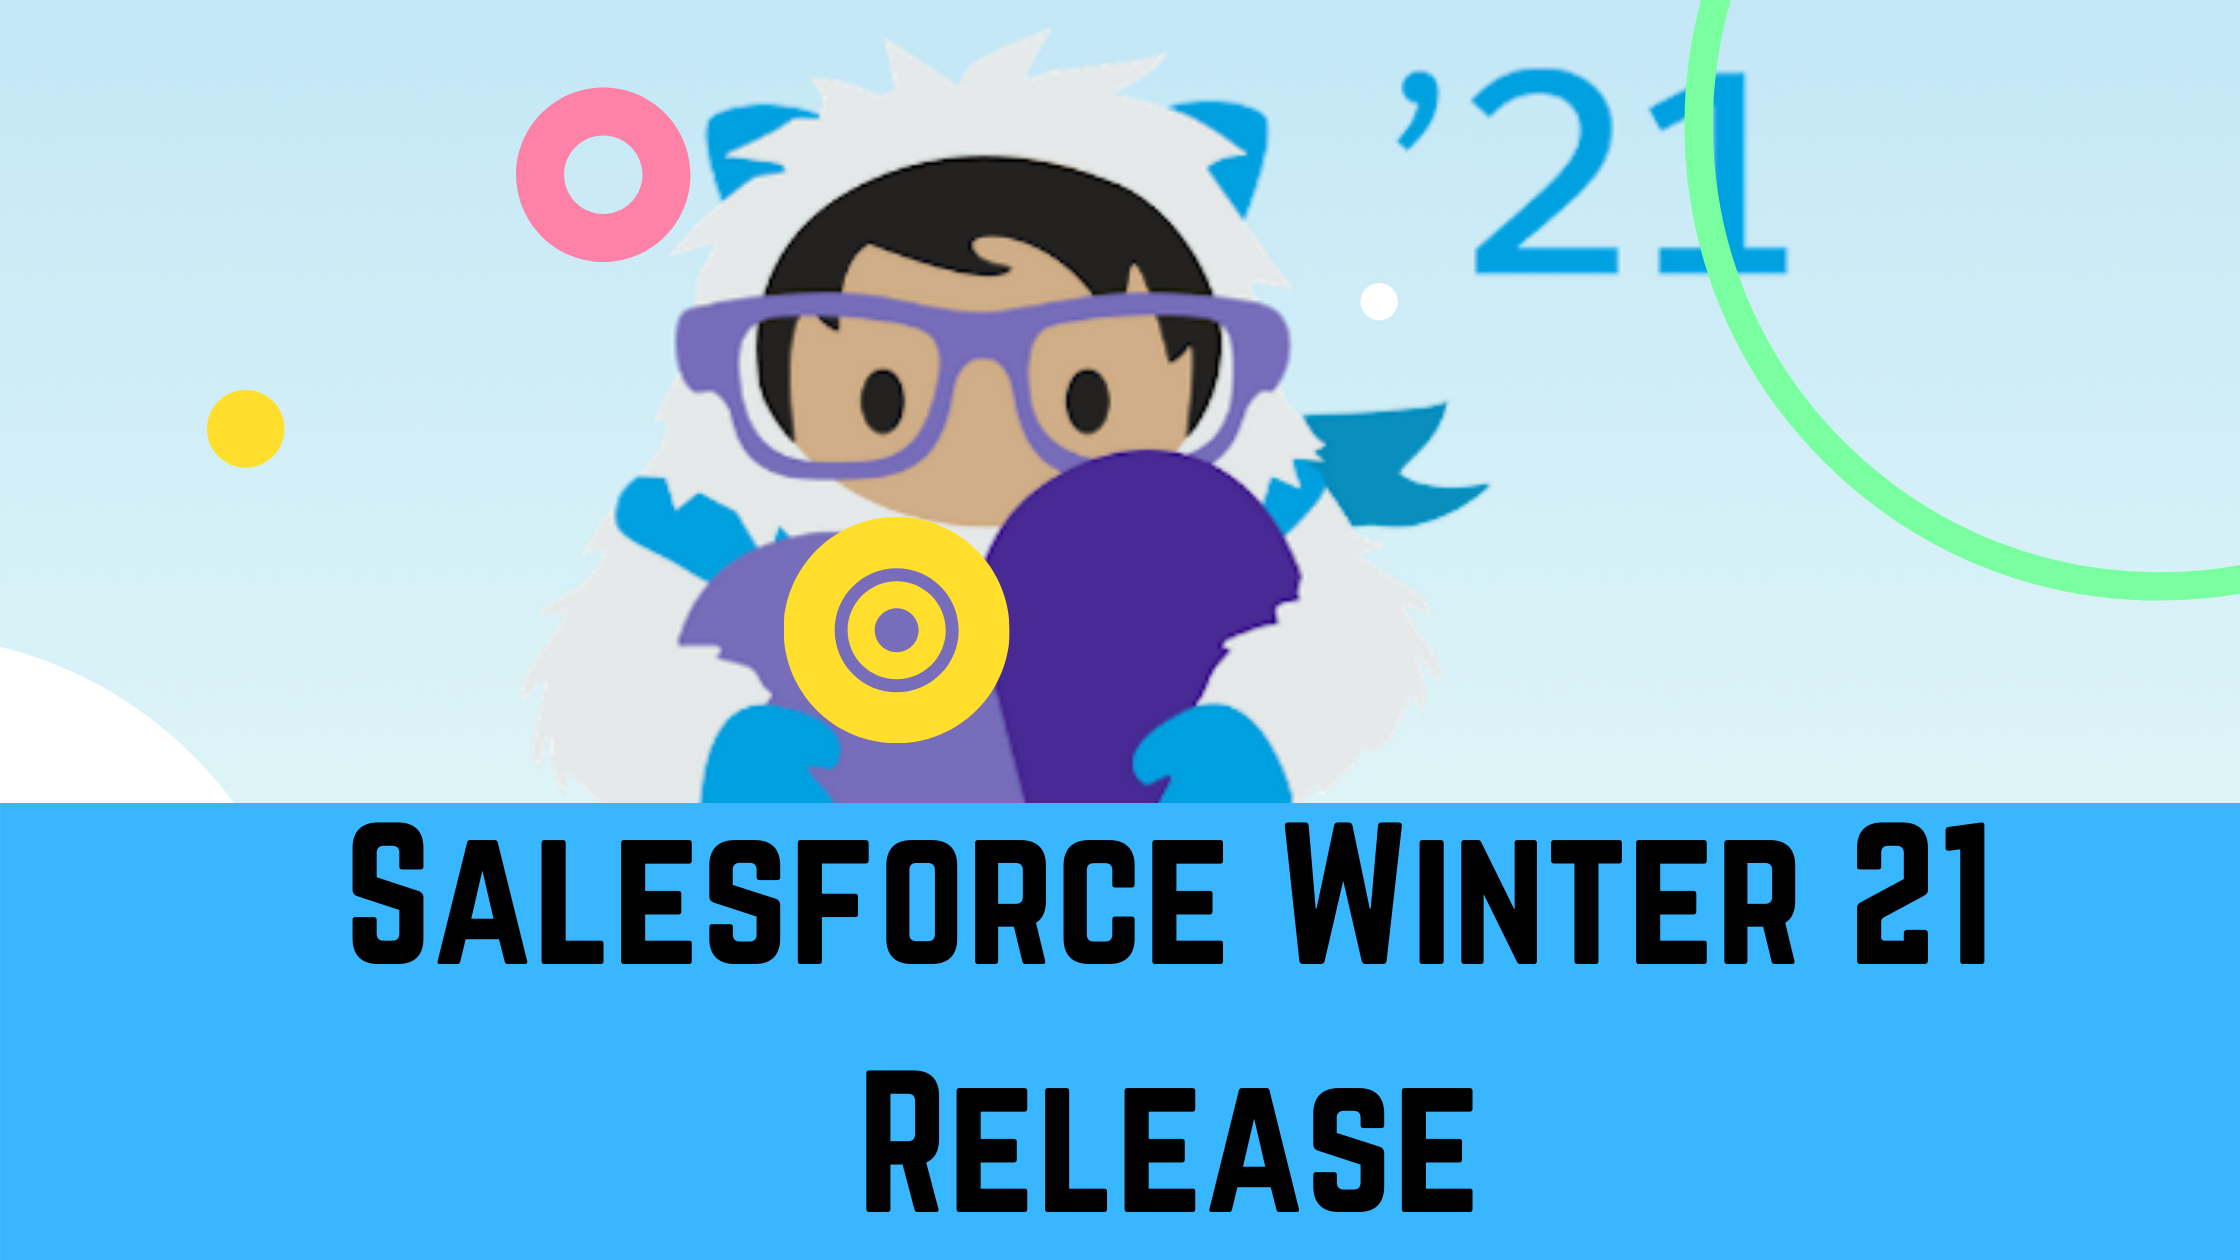 Salesforce Winter 21 Release